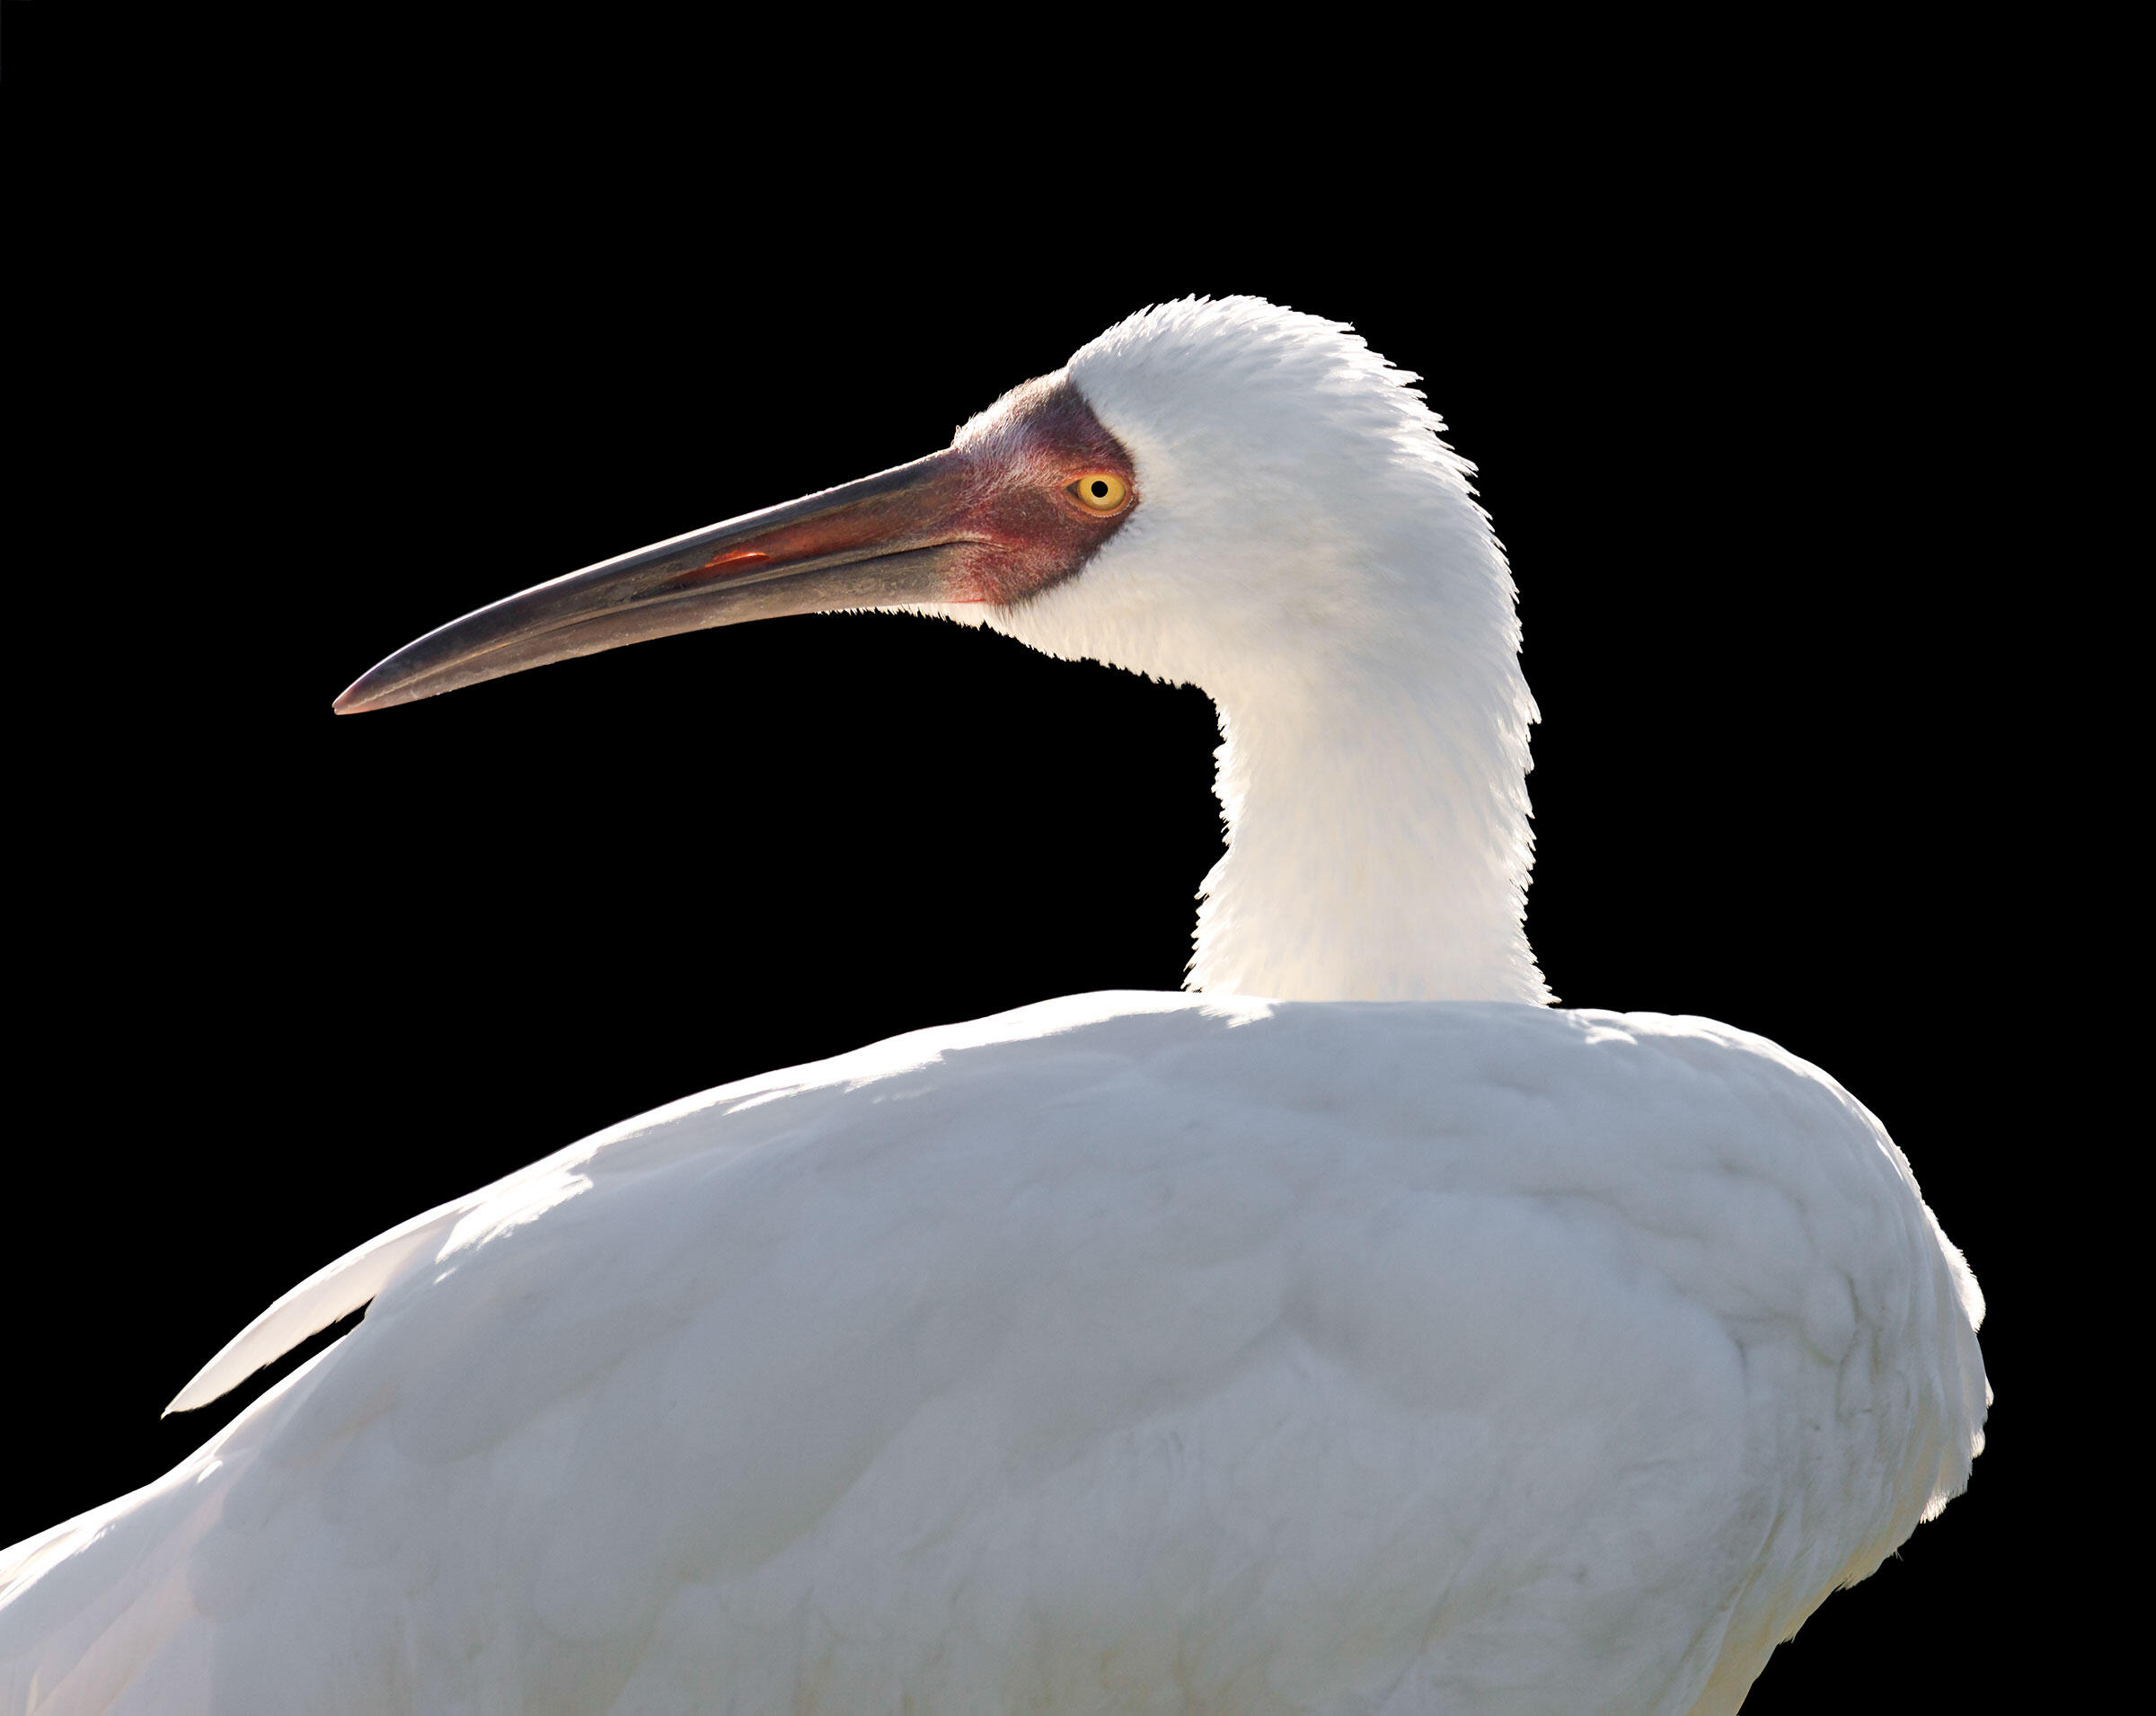 The Siberian Crane is a critically endangered species, numbering at around 3,000 birds. Nearly all of the birds winter at Poyang Lake in China, which is threatened by continuing development, sand mining, and a planned dam. Ted Thousand